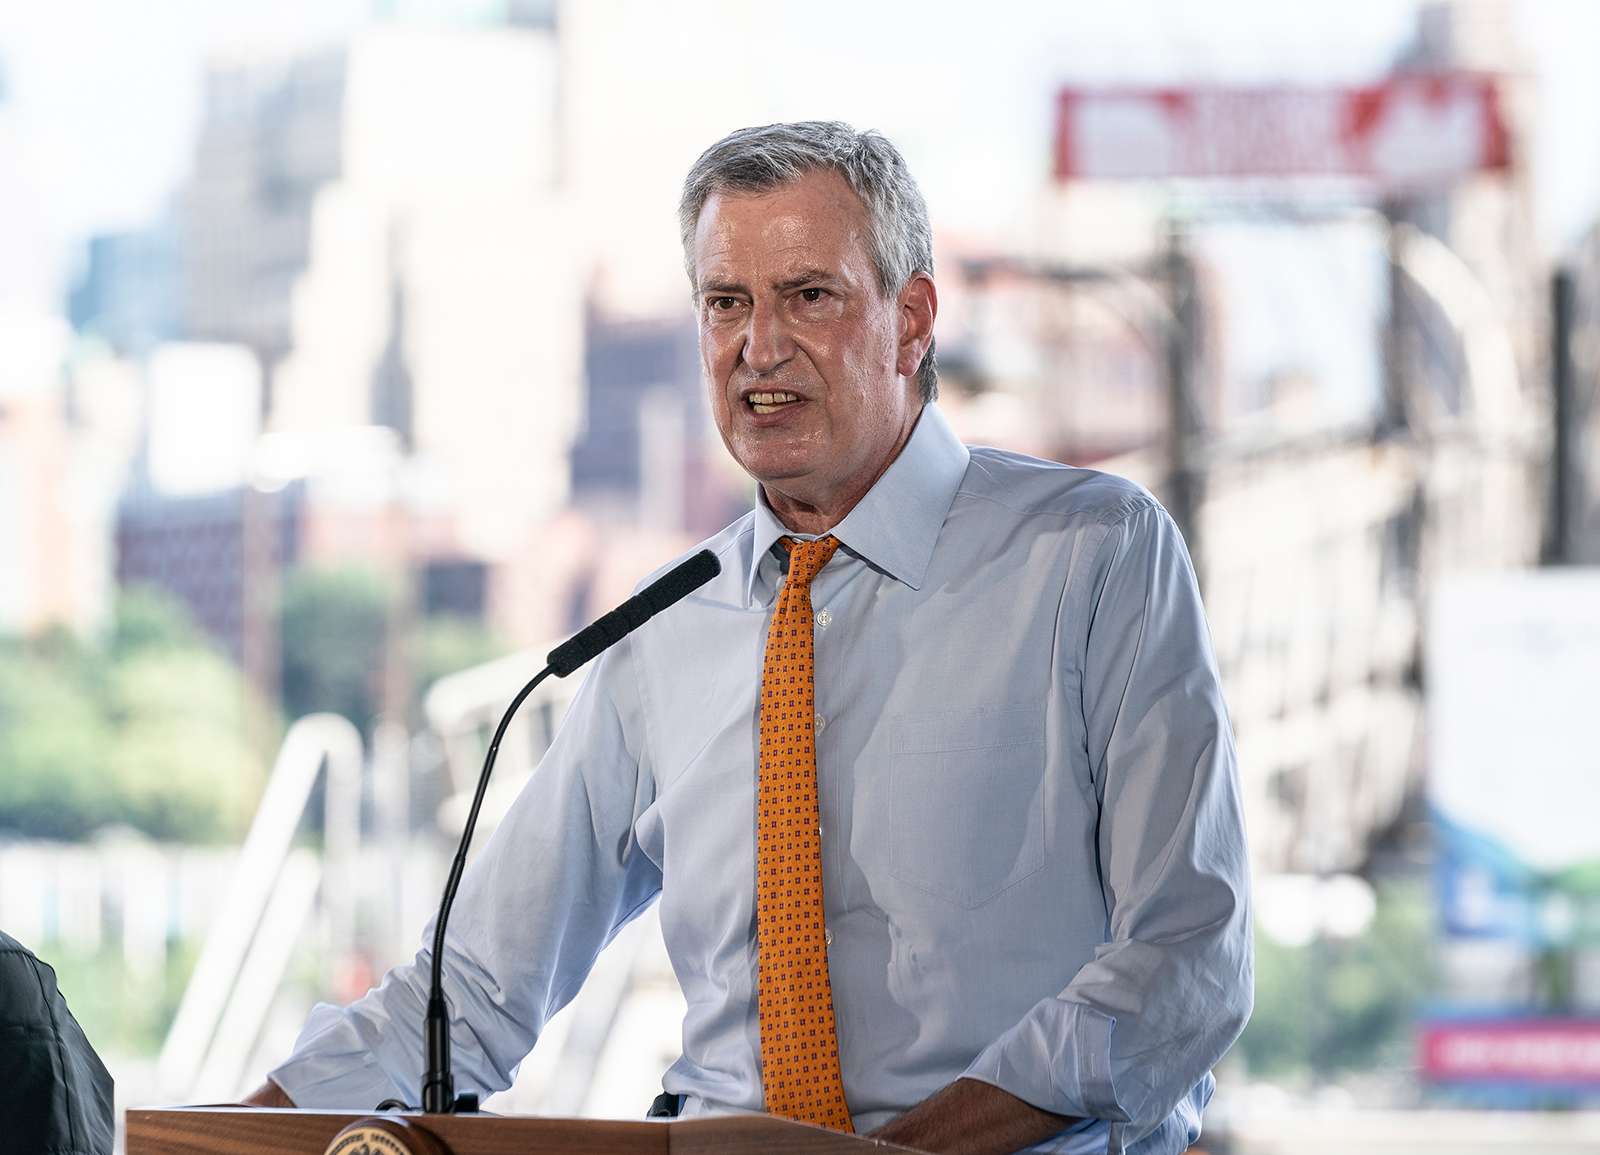 New York City Mayor Bill de Blasio speaks at a press conference at the South Street Seaport about city preparations for tropical storm Isaias on Monday, August 3.